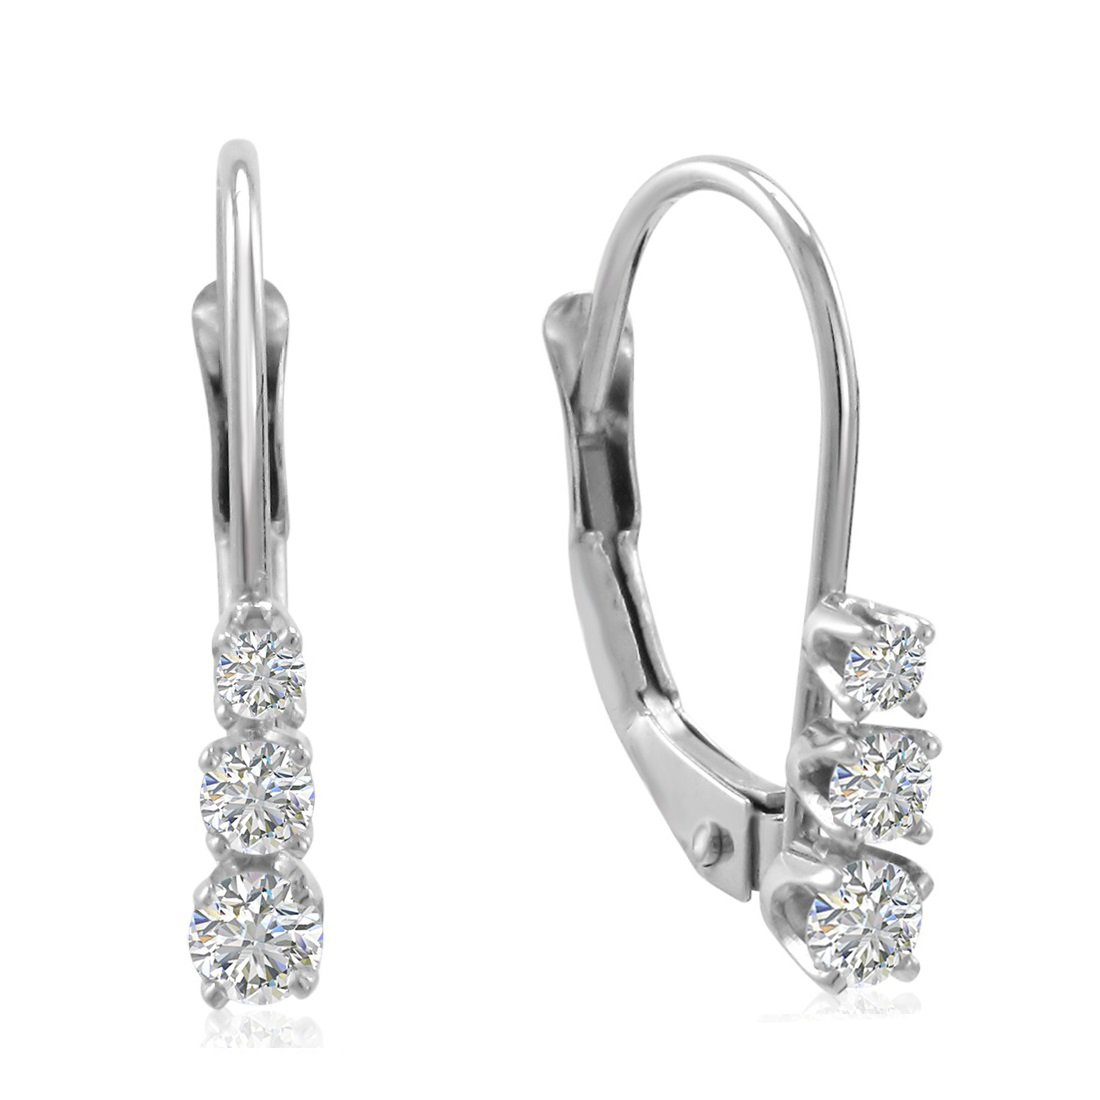 AGS Certified 10K White Gold Three Stone Diamond Leverback Earrings 1/4cttw by Amanda Rose Collection